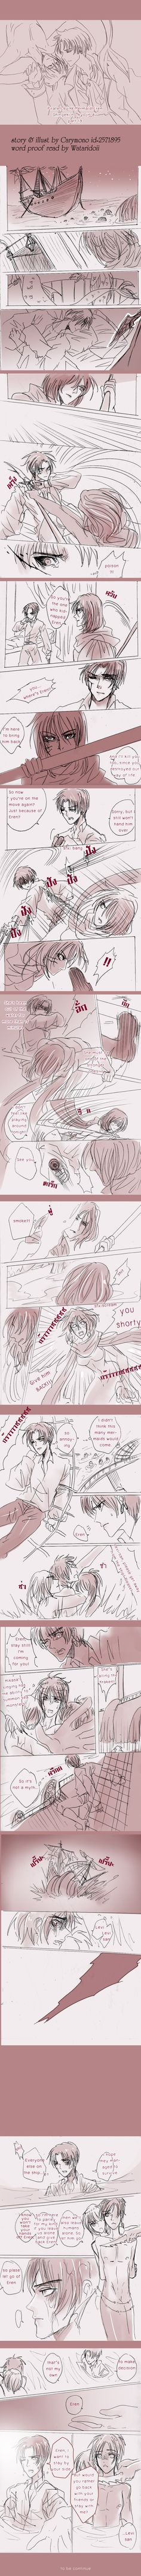 SnK'AU : Pirate!Levi x Mermaid!Eren part13 by illuscarymono.deviantart.com on @DeviantArt